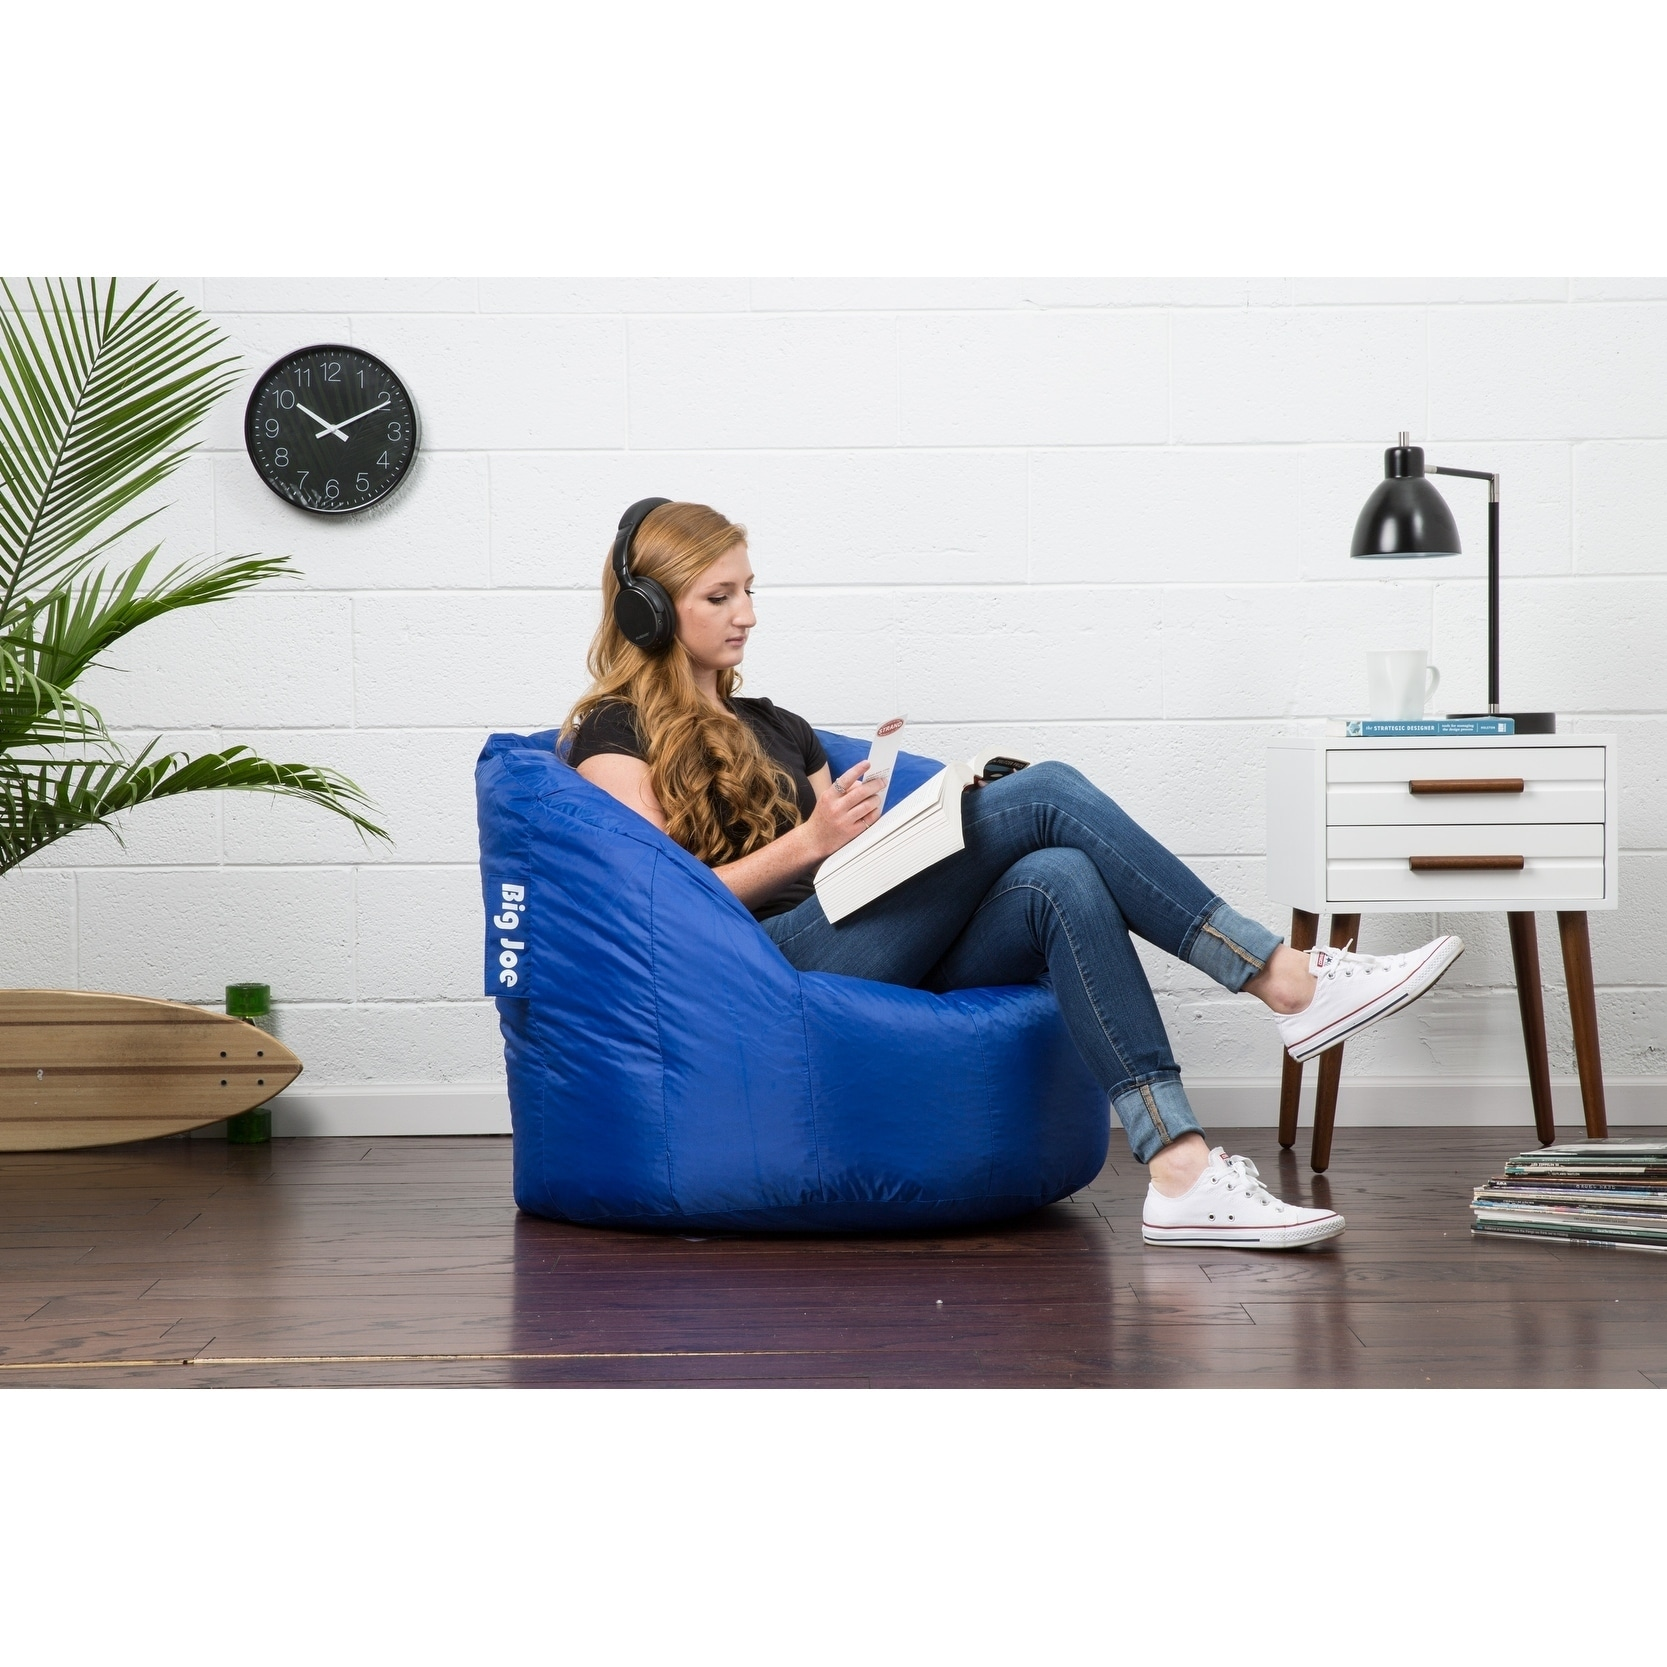 Joe Milano Bean Bag Chair Smartmax Free Shipping Today 21371454